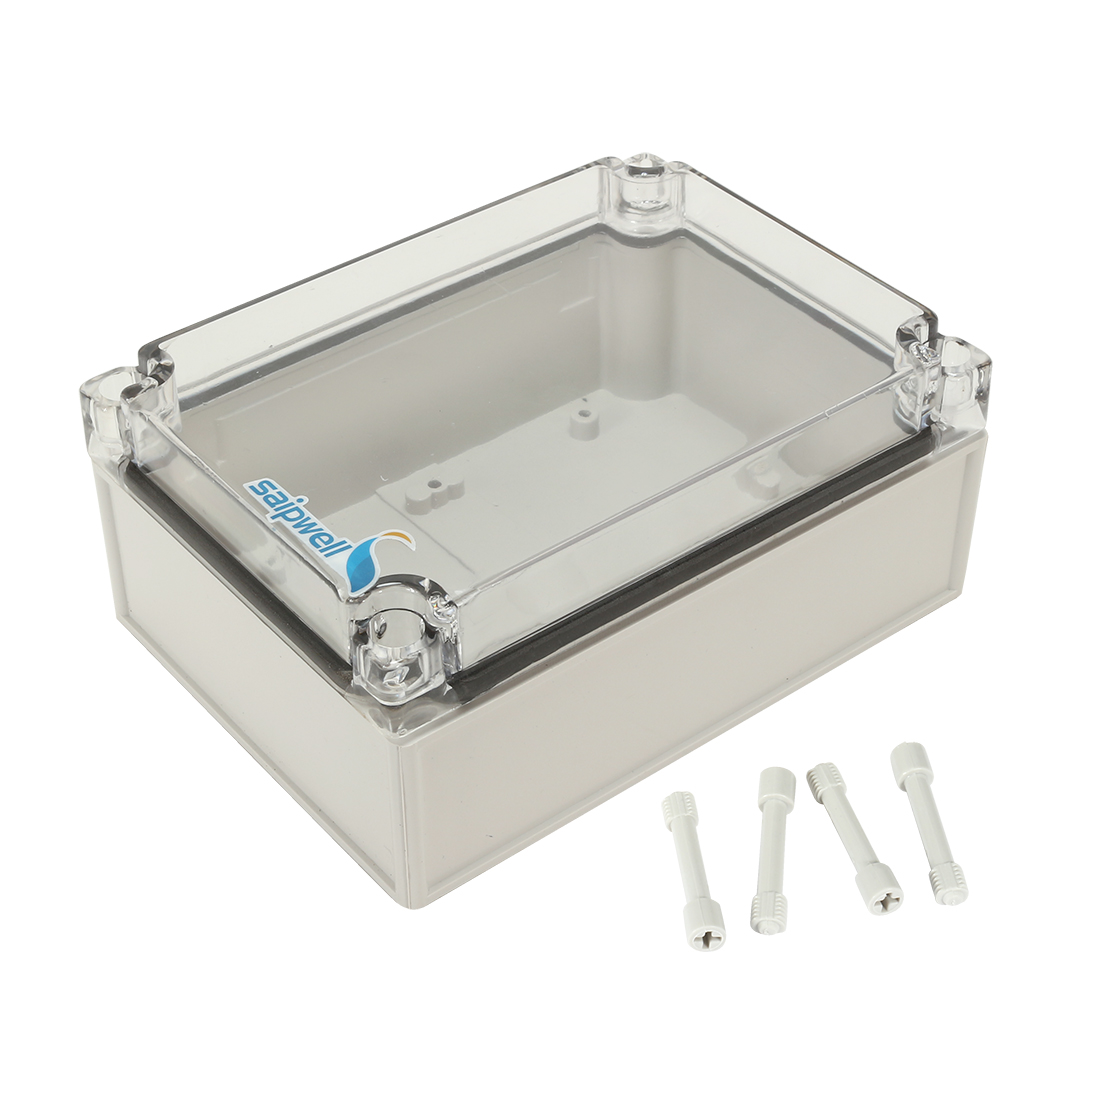 """4.9""""x6.9""""x2.94""""(125mmx175mmx75mm) ABS Junction Box Universal Project Enclosure w PC Transparent Cover"""